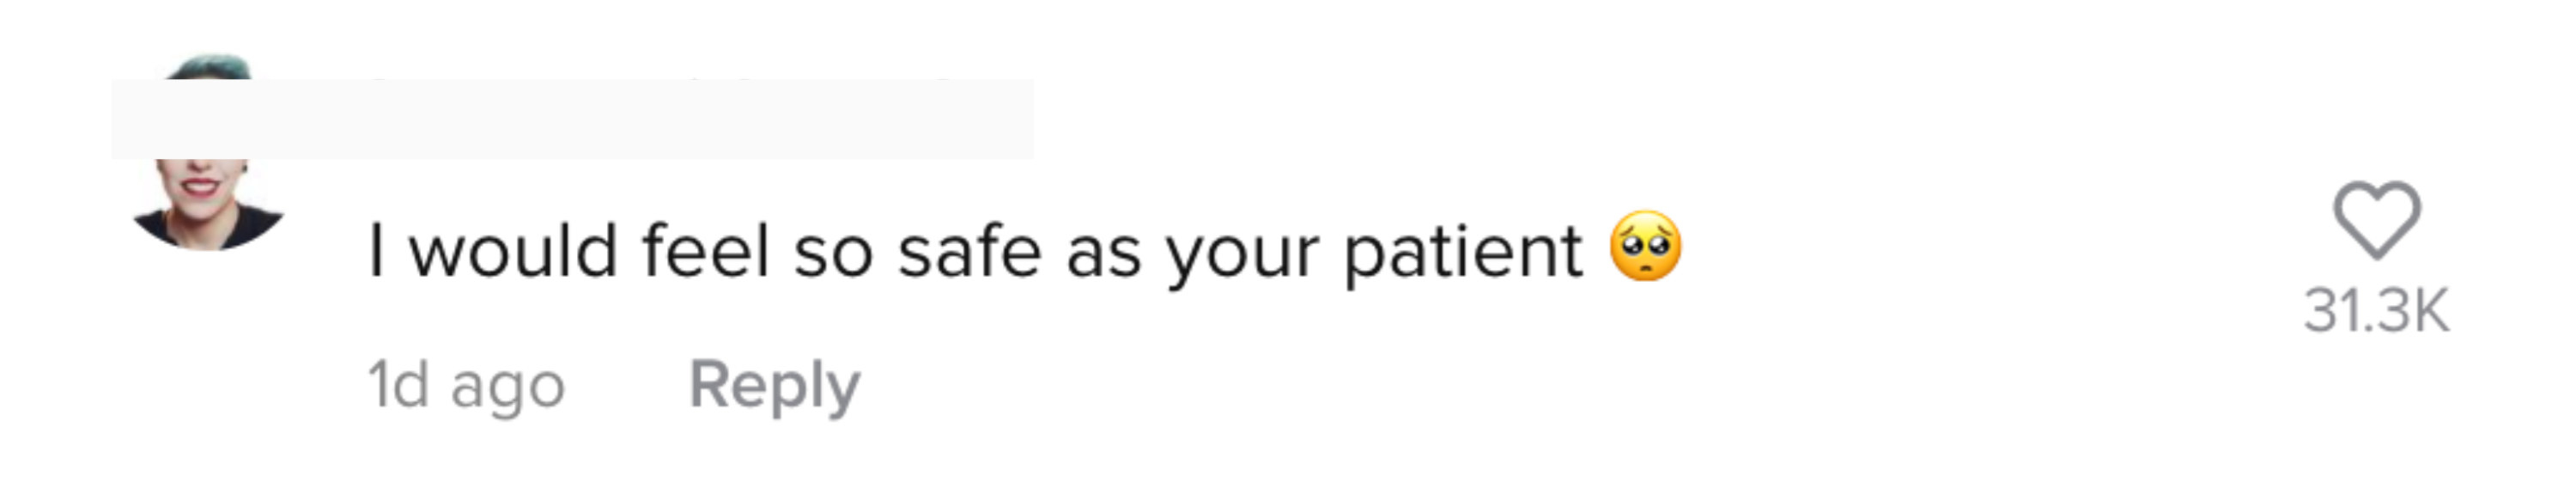 "One comment says ""I would feel so safe as your patient {wide-eye emoji}"""